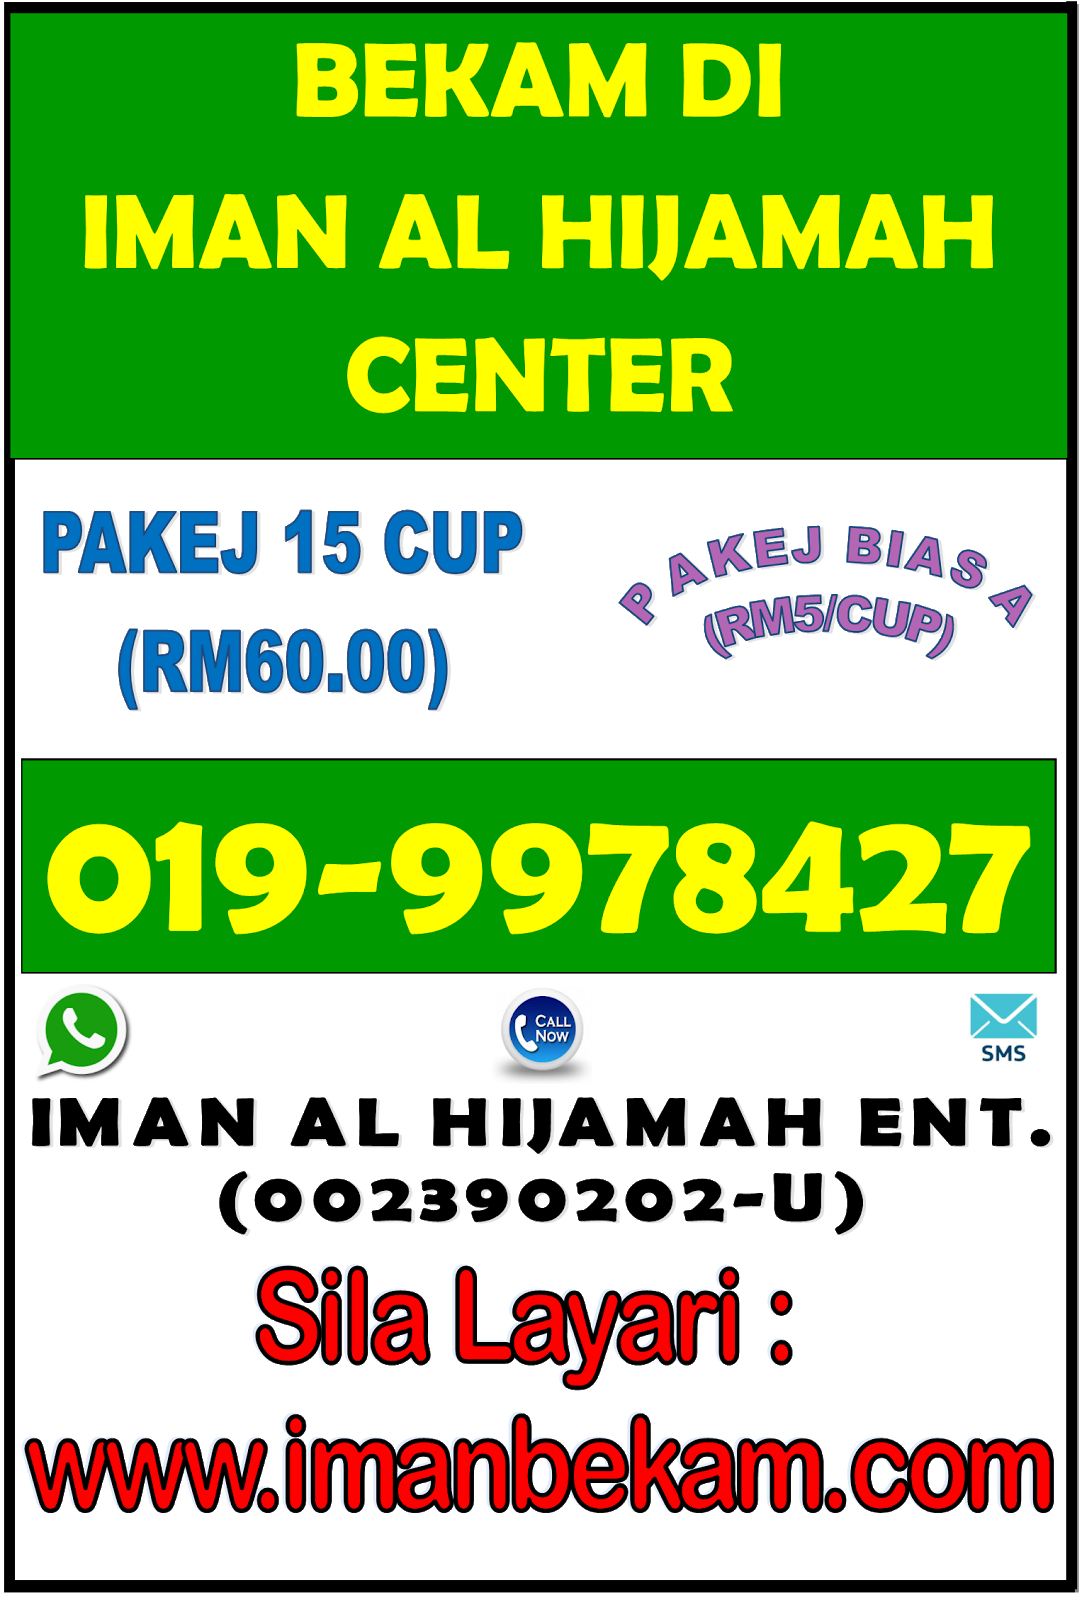 BEKAM DI IMAN AL HIJAMAH CENTER